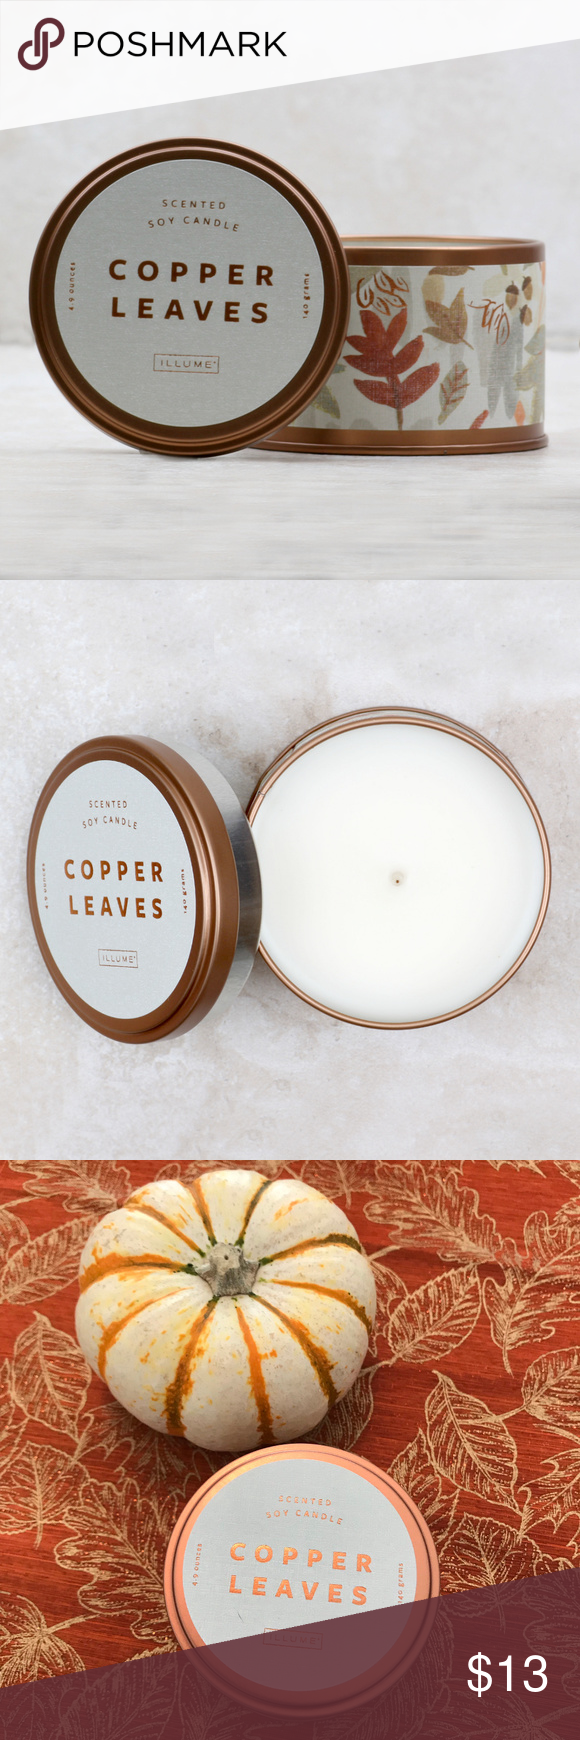 Autumnal Equinox Tin Copper Leaves Candle Price is FIRM. Notes of roasted chestnuts, cinnamon and coconut create the quintessential fragrance of fall. BURN TIME: 20 Hours Illume Other #autumnalequinox